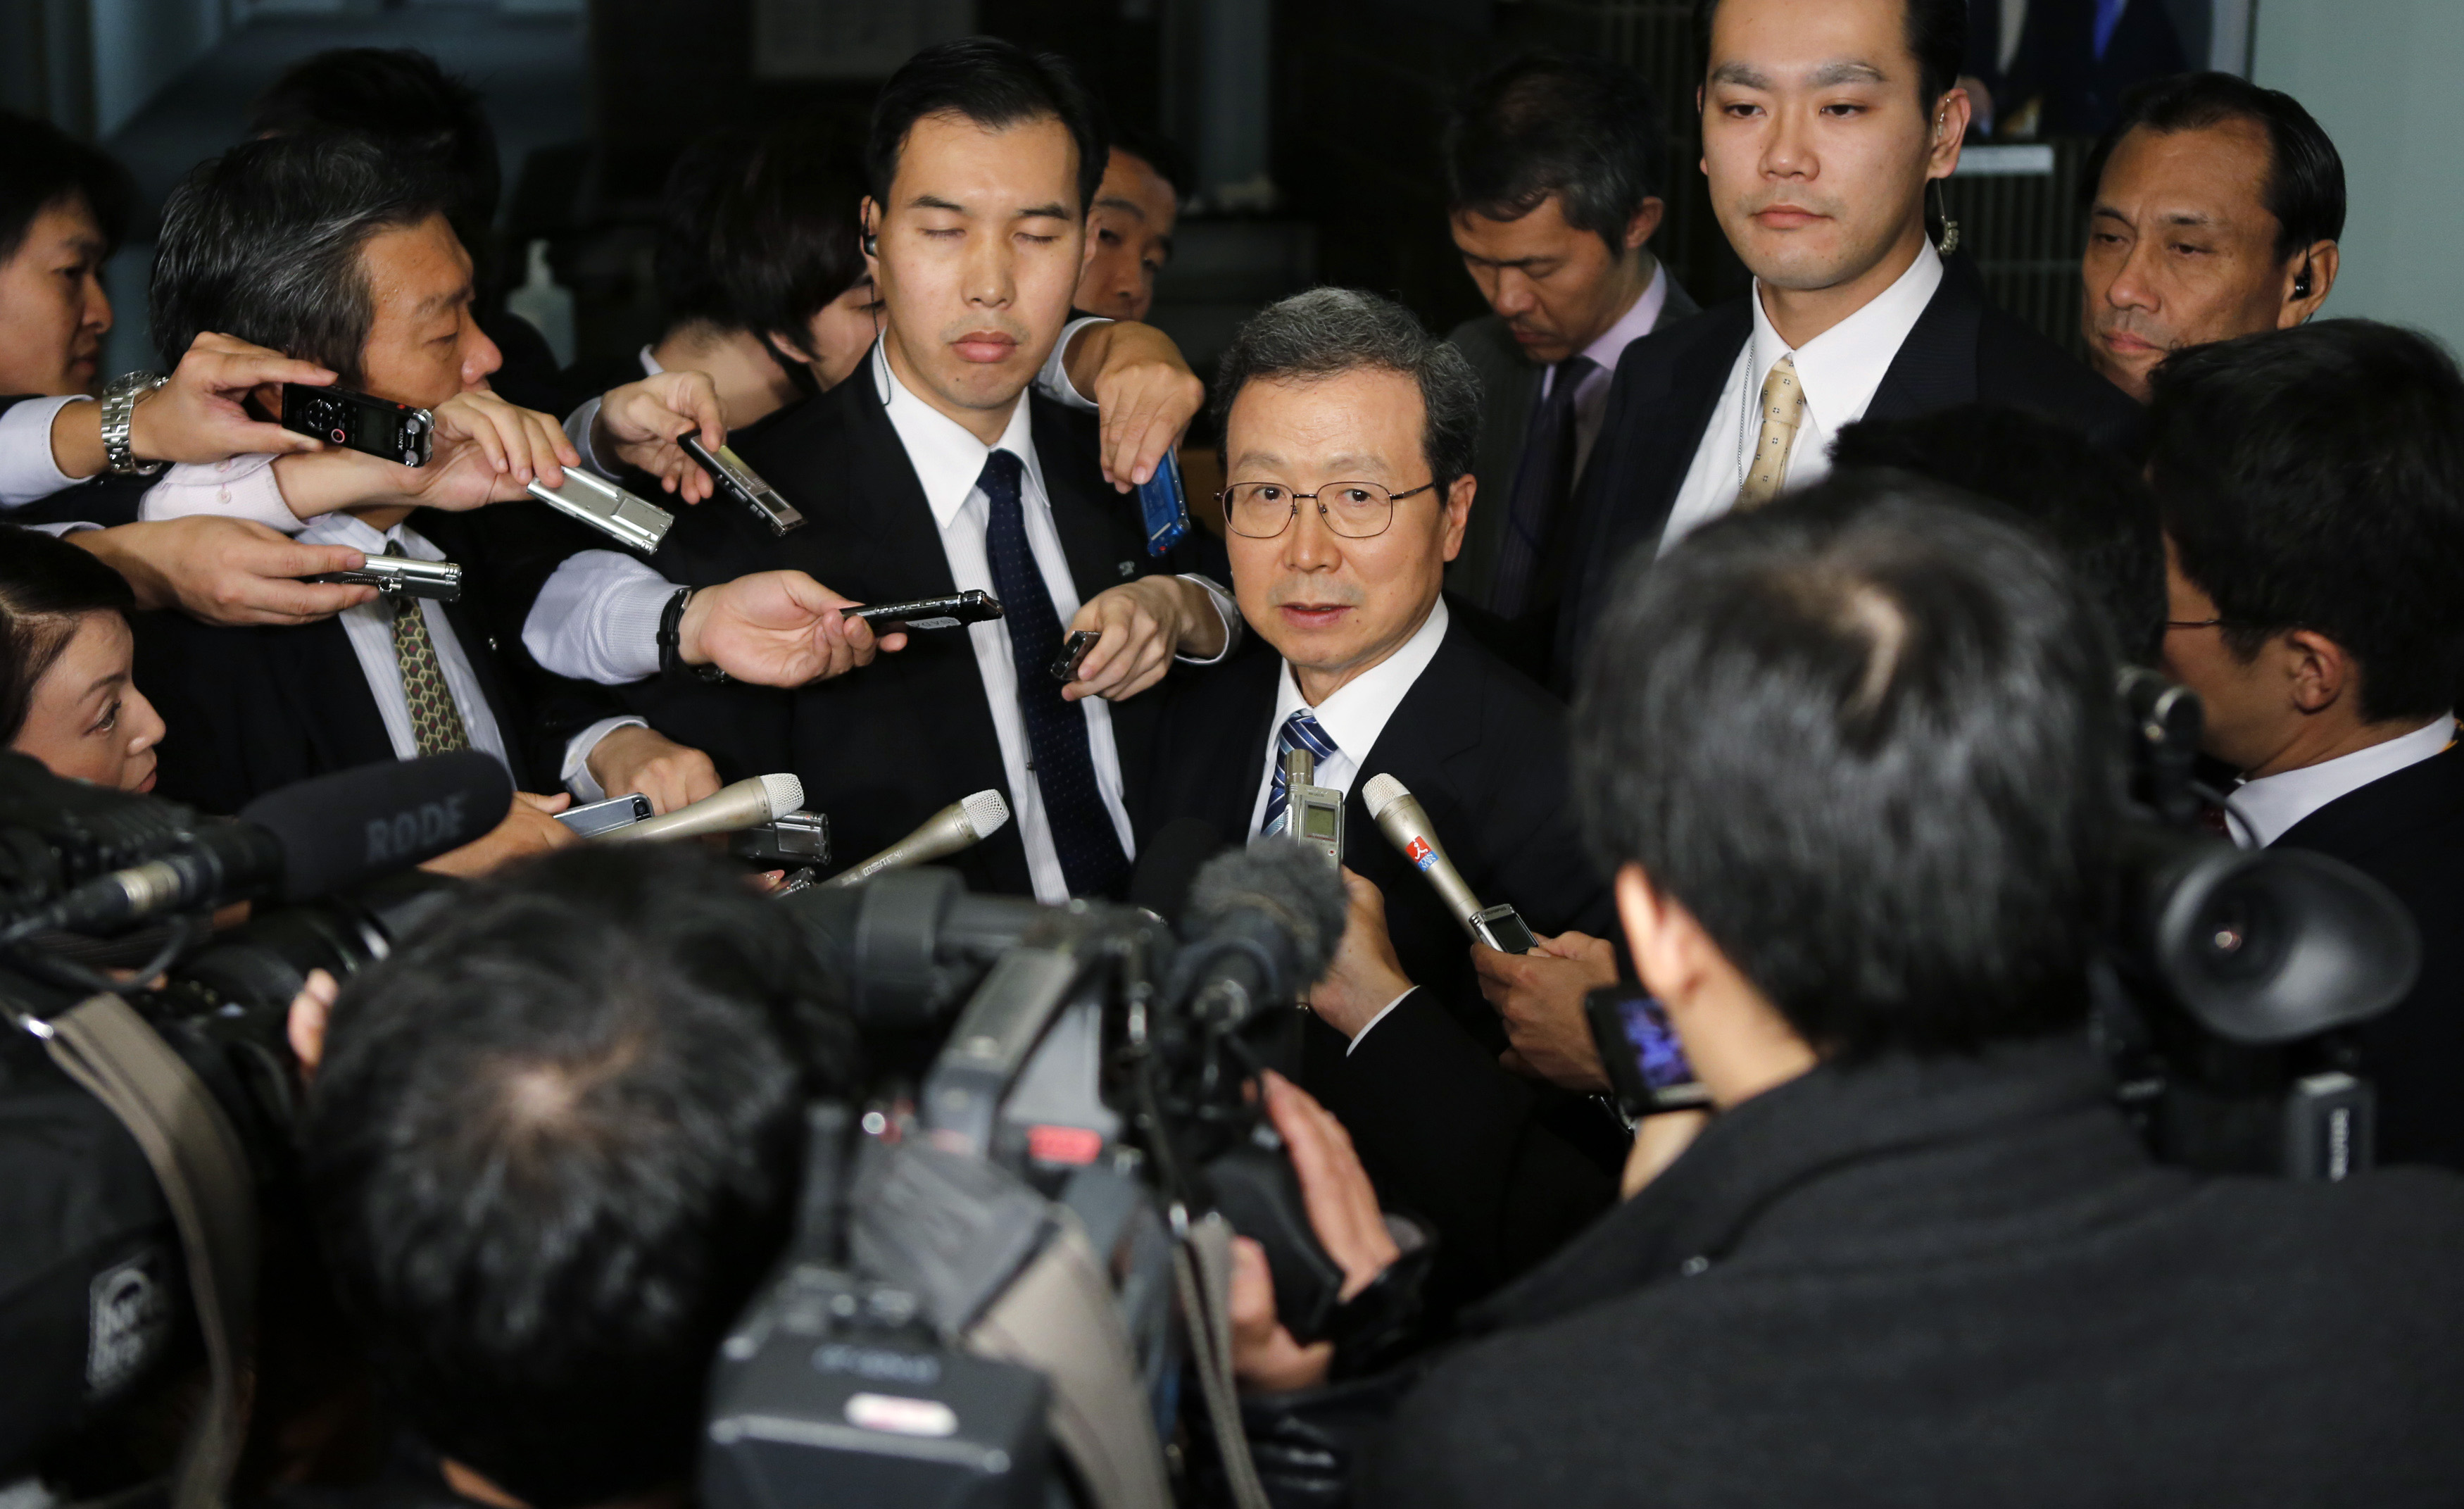 Cheng Yonghua, center, Chinese ambassador to Japan, is surrounded by the media as he speaks after meeting with Japan's Vice Minister for Foreign Affairs Akitaka Saiki at the Foreign Ministry in Tokyo, Nov. 25, 2013. Asian aviation officials said air...